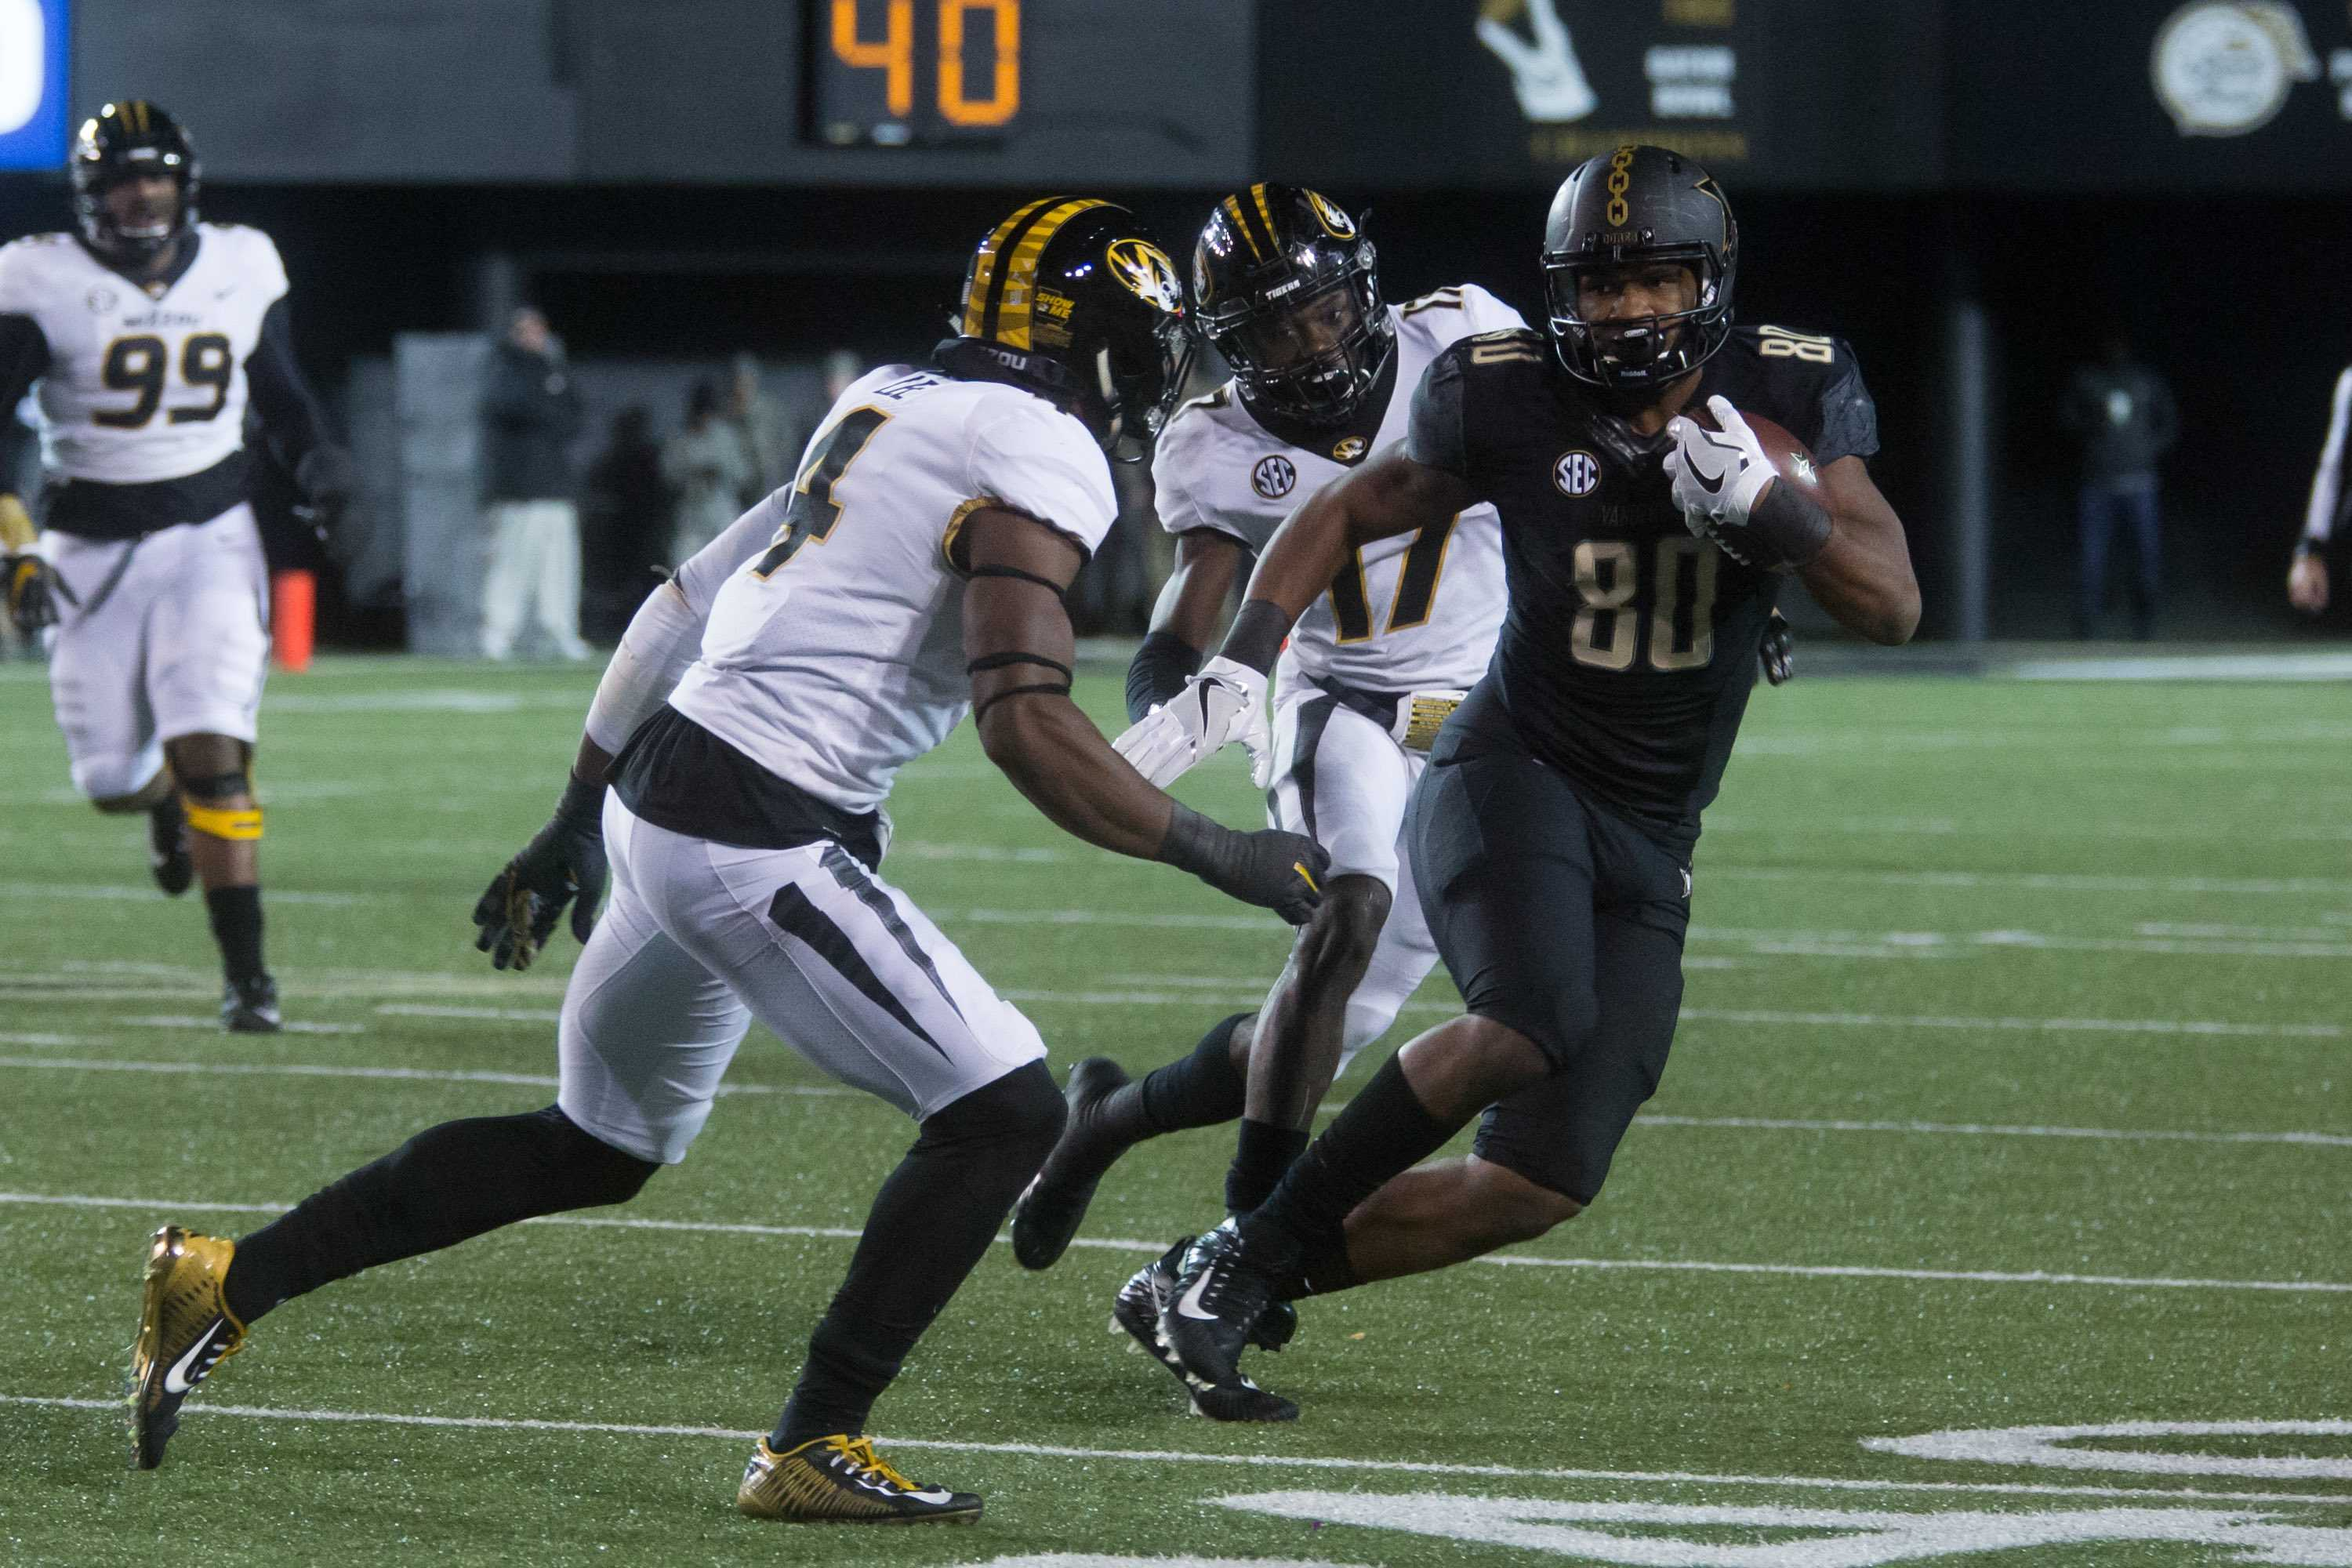 The Commodores play Missouri on Saturday, November 18, 2017. (Photo by Claire Barnett)